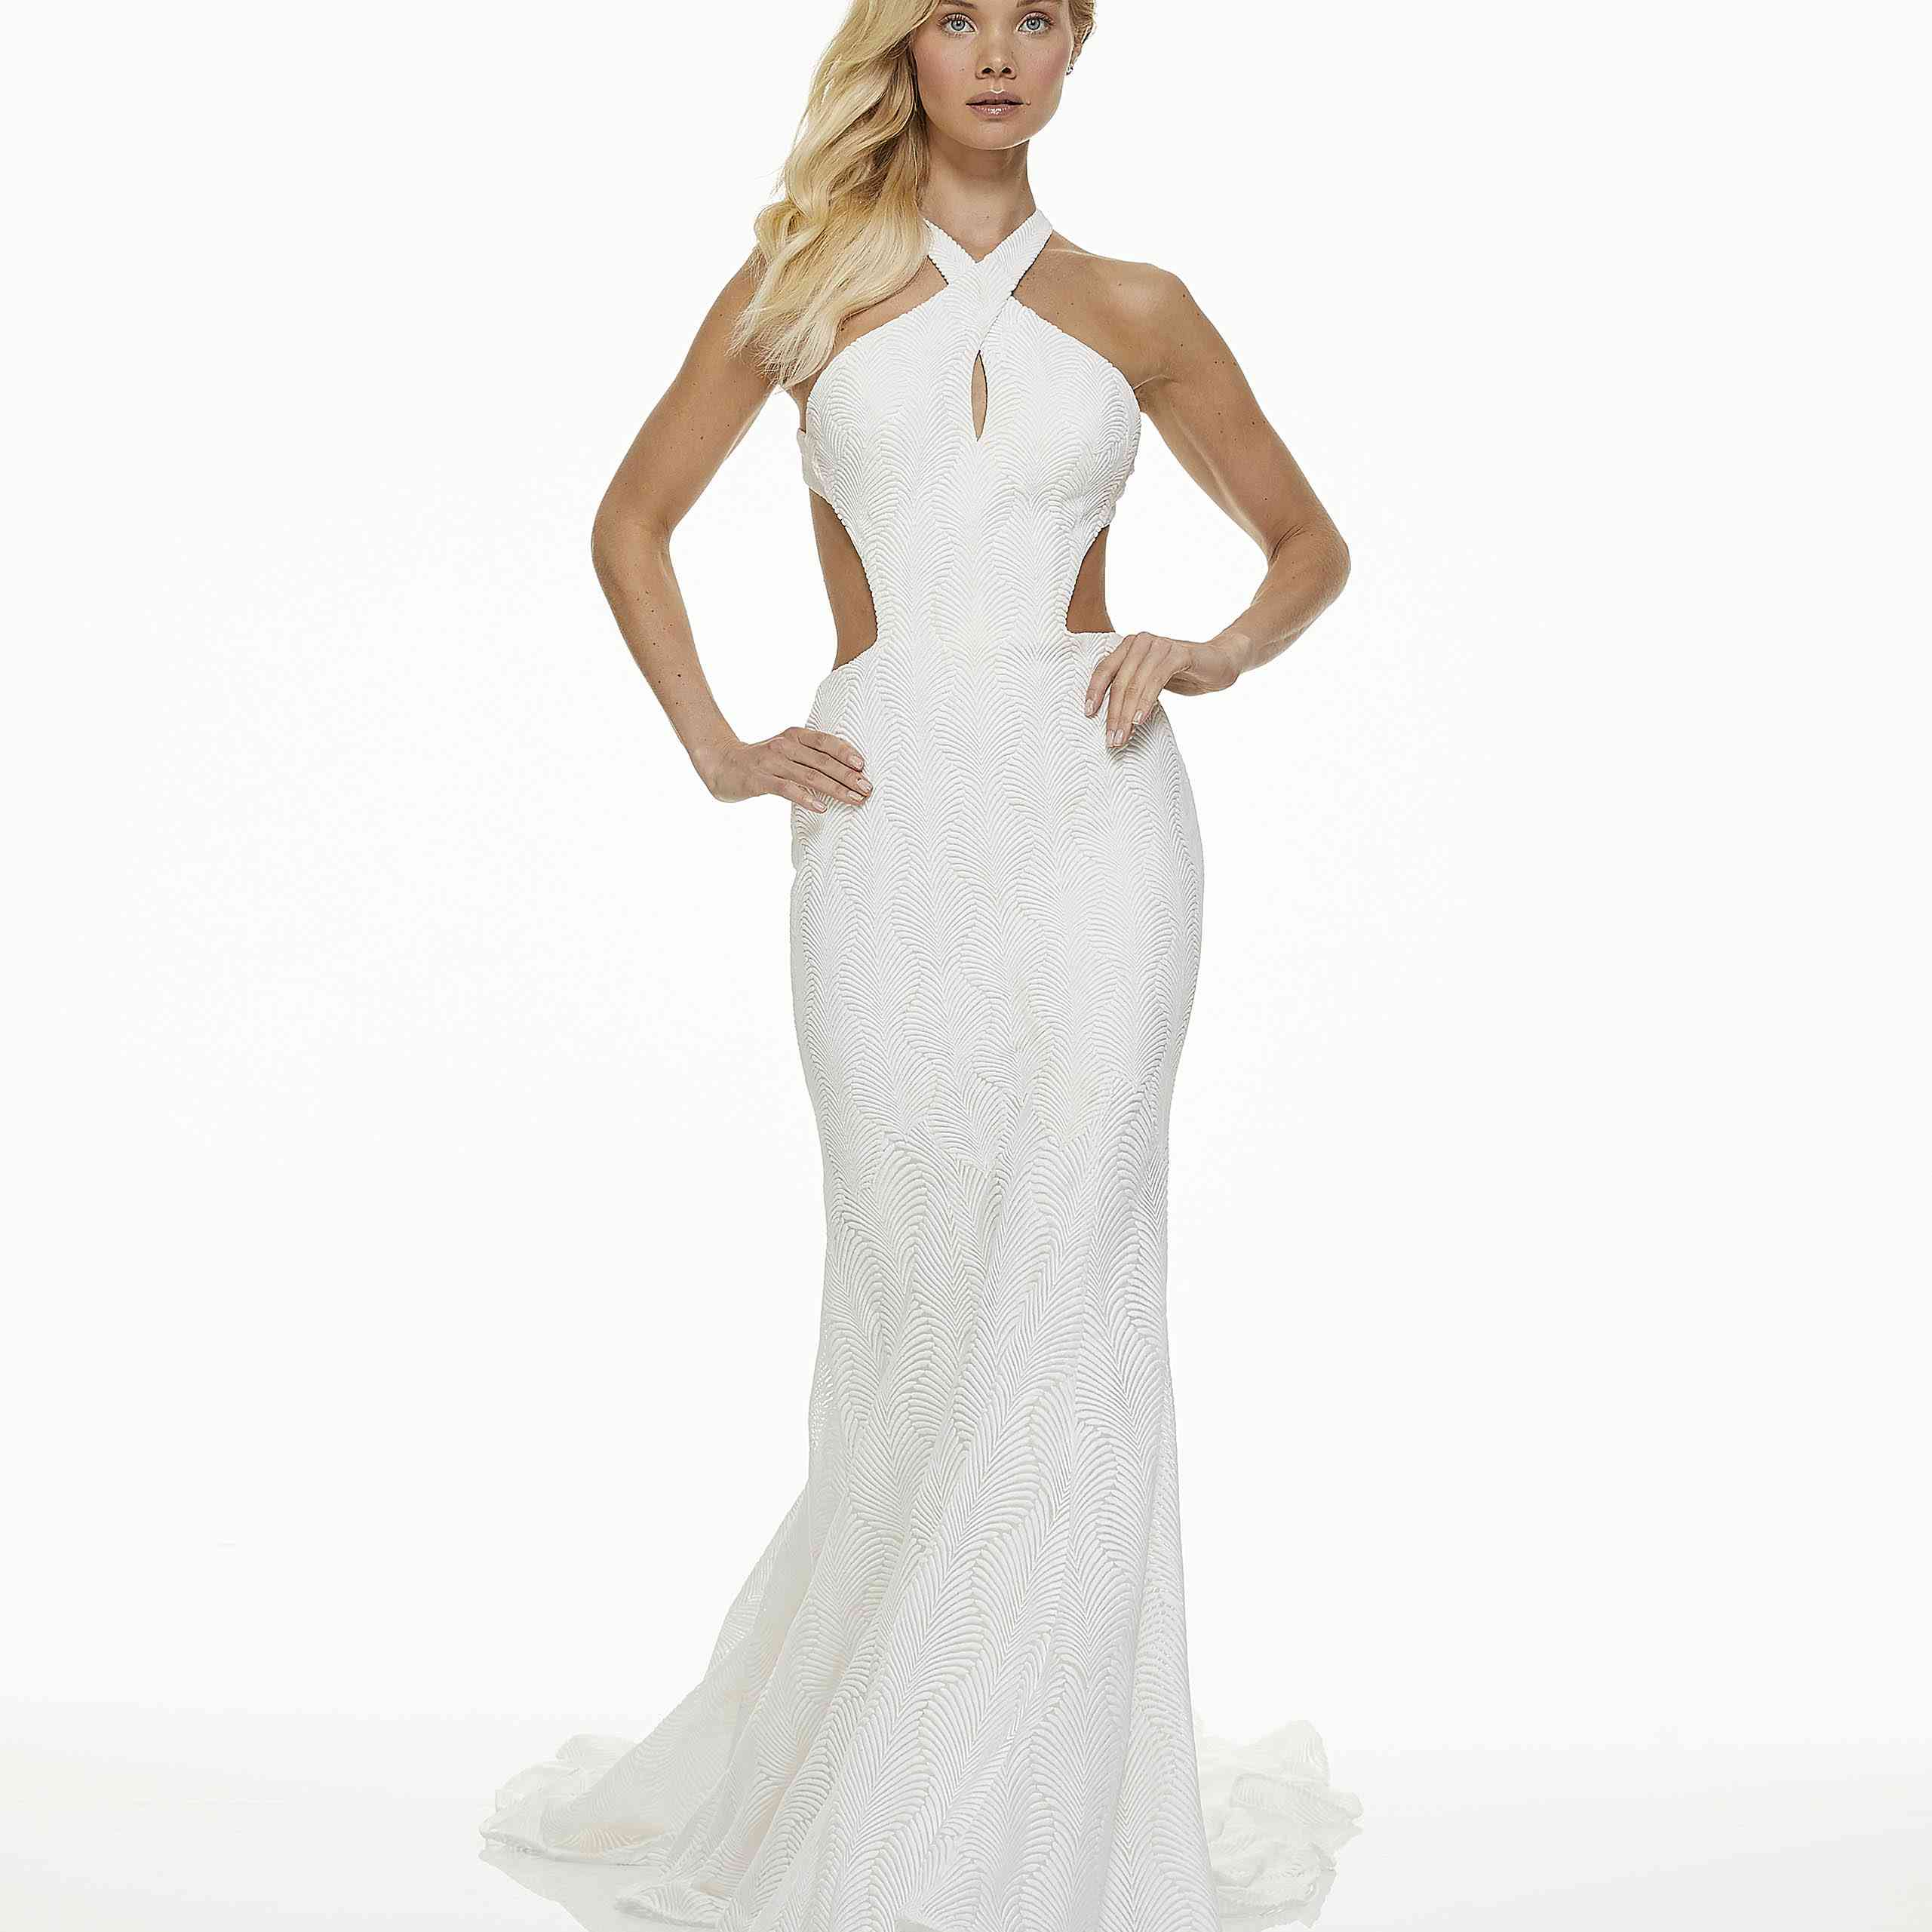 Model in halter fit-and-flare wedding dress